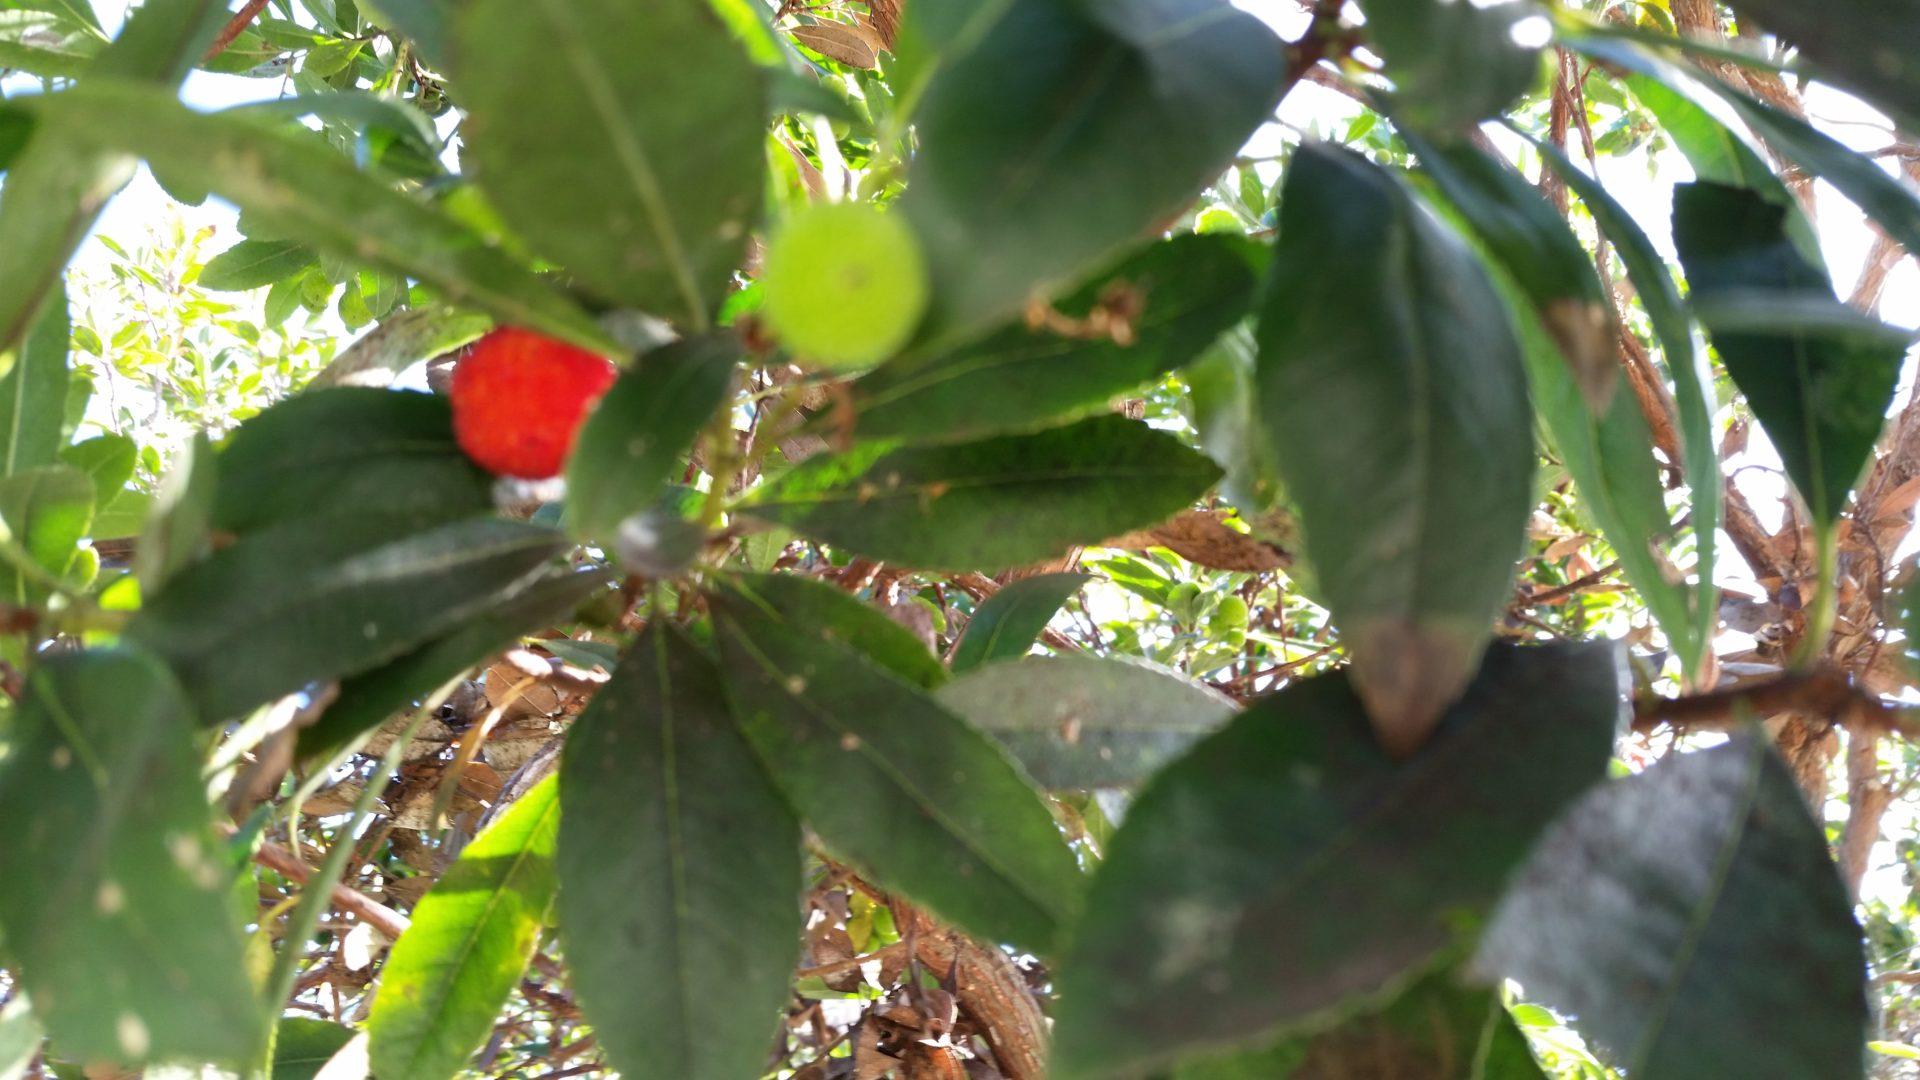 Red Pod/Fruit